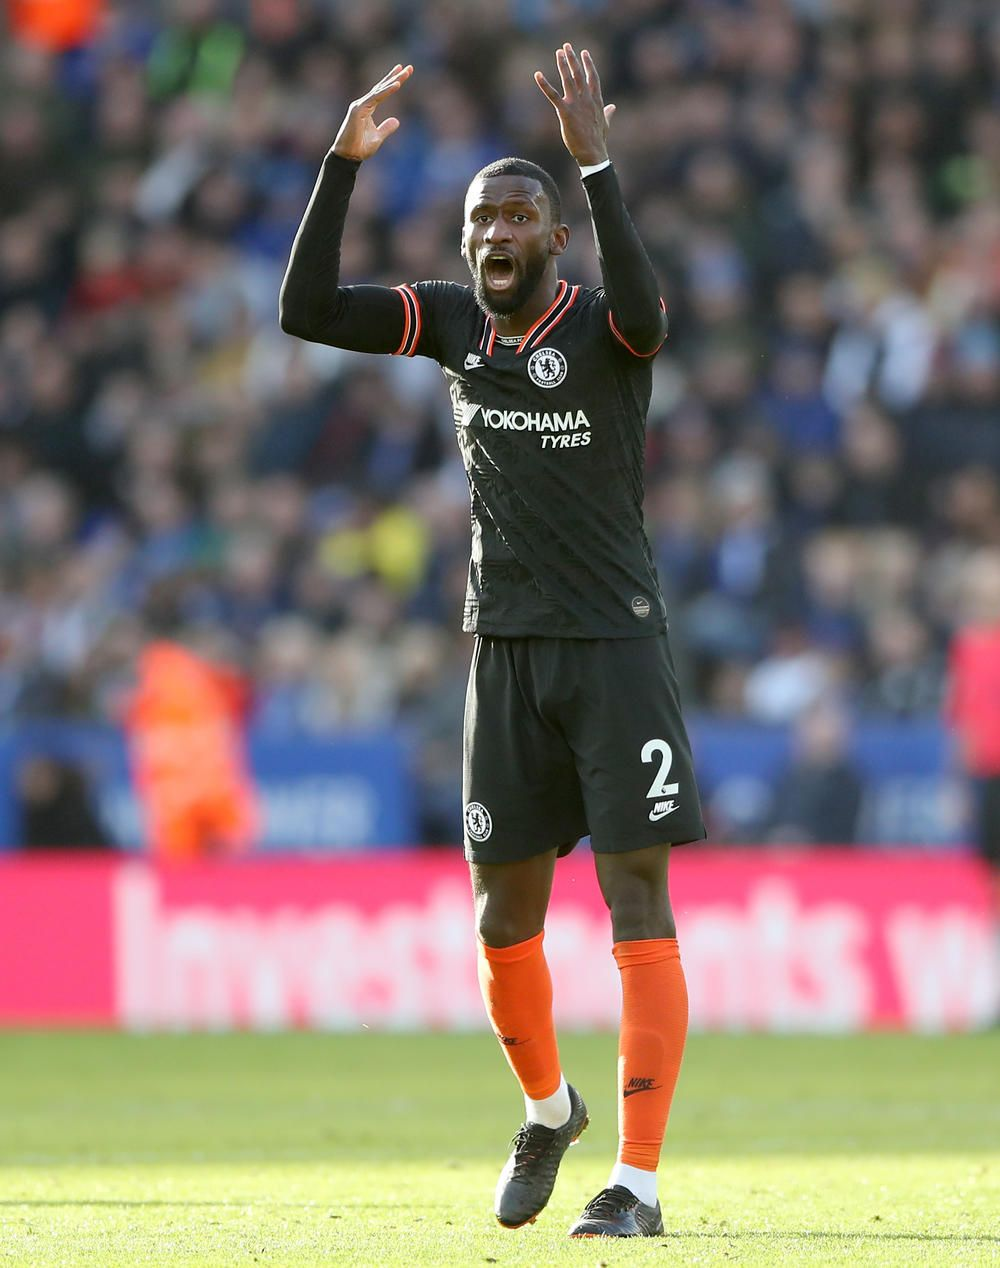 Antonio Rudigers Double Earns Chelsea A Point At Leicester Fourfourtwocatch All Of The Action With Numediaentertainment Com In 2020 Chelsea Leicester Antonio